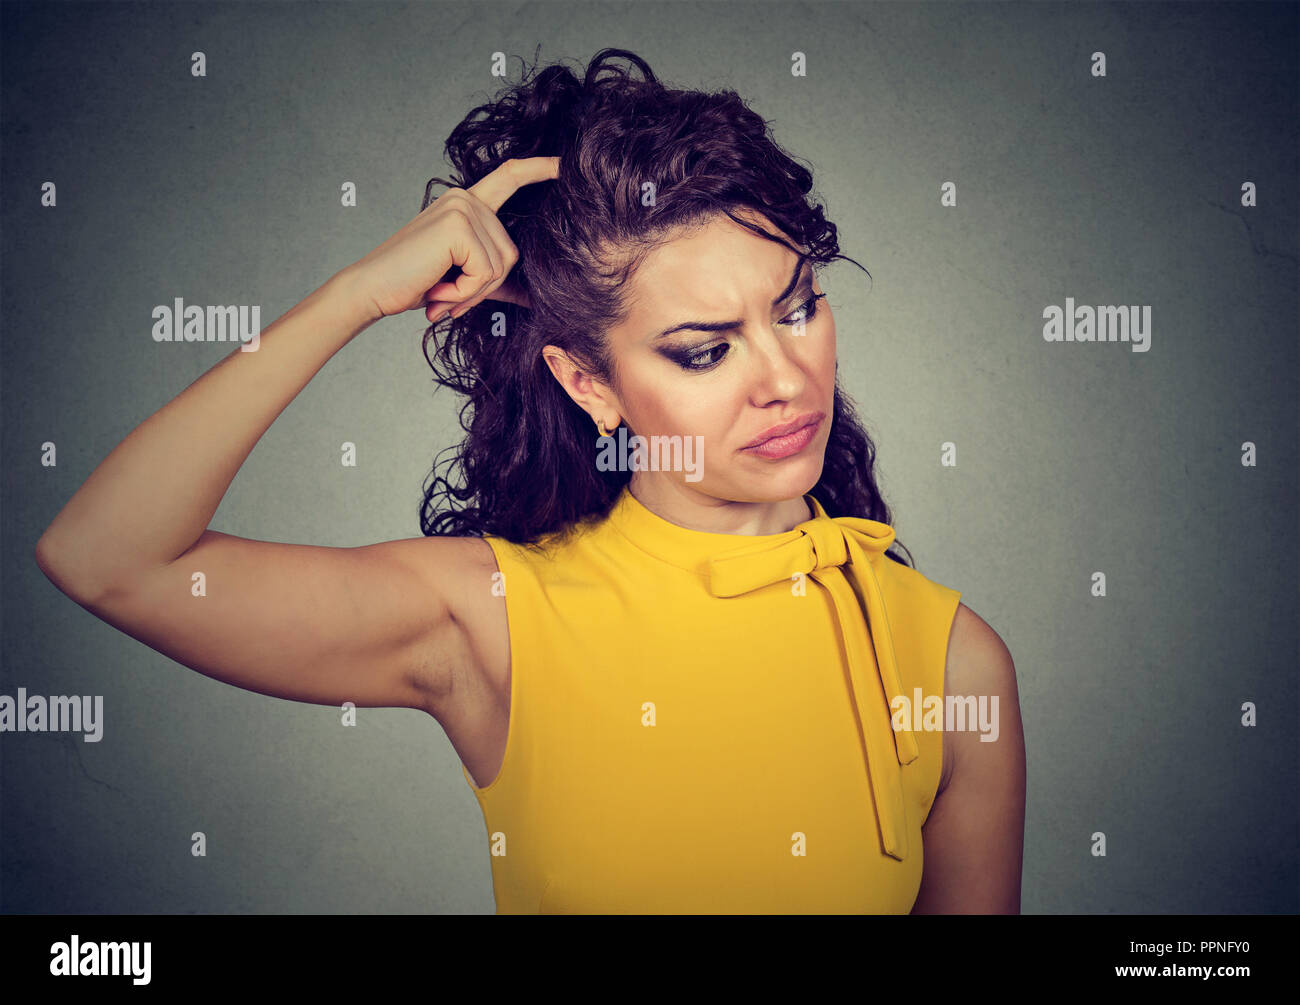 Young puzzled brunette woman in yellow dress scratching head in perplexion looking away - Stock Image